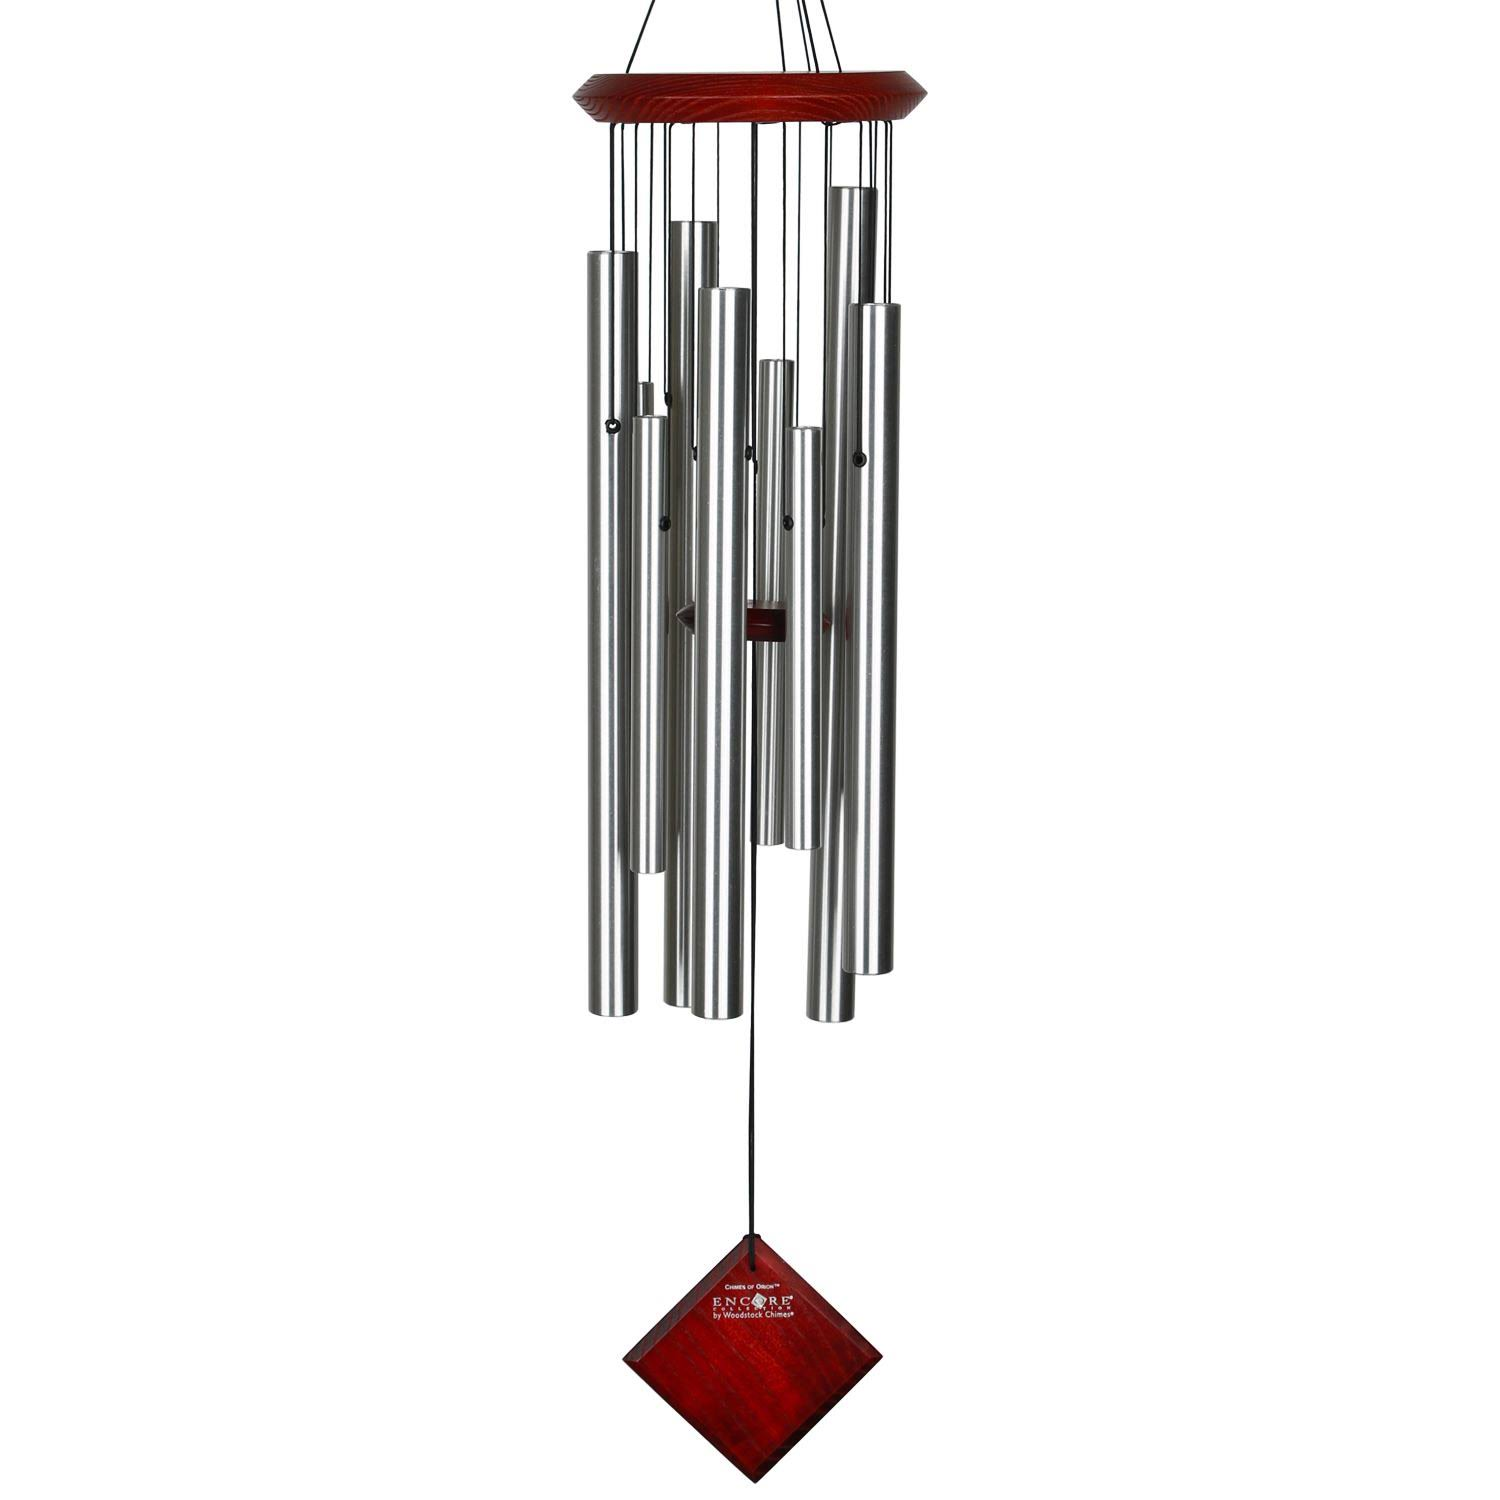 Woodstock Encore Chimes of Orion Silver Wind Chime